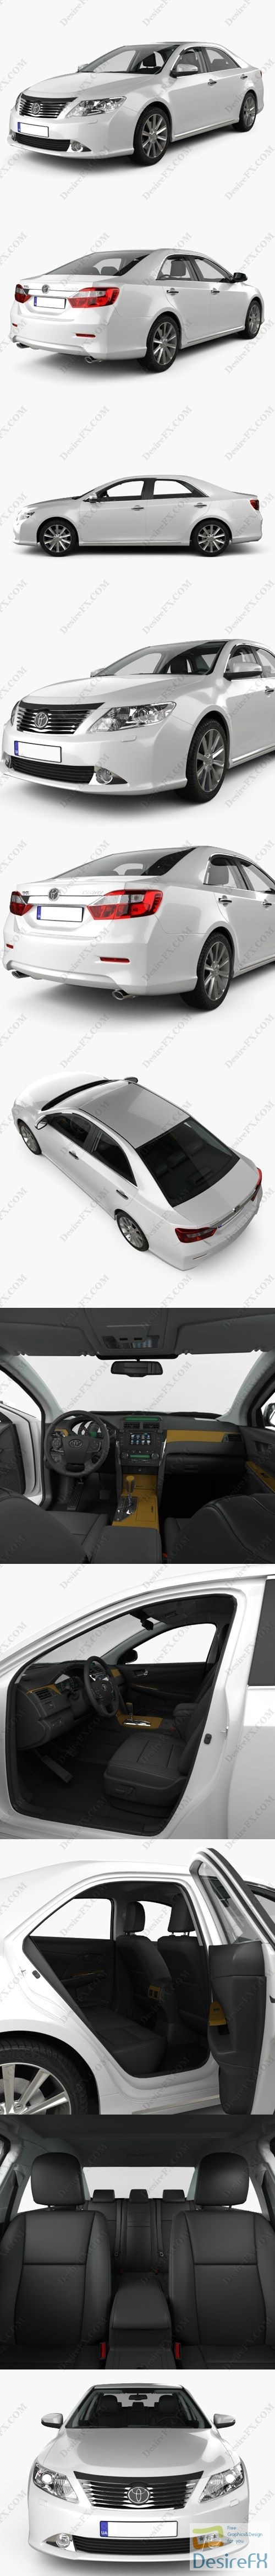 3d-models - Toyota Camry 2011 with HQ interior 3D Model